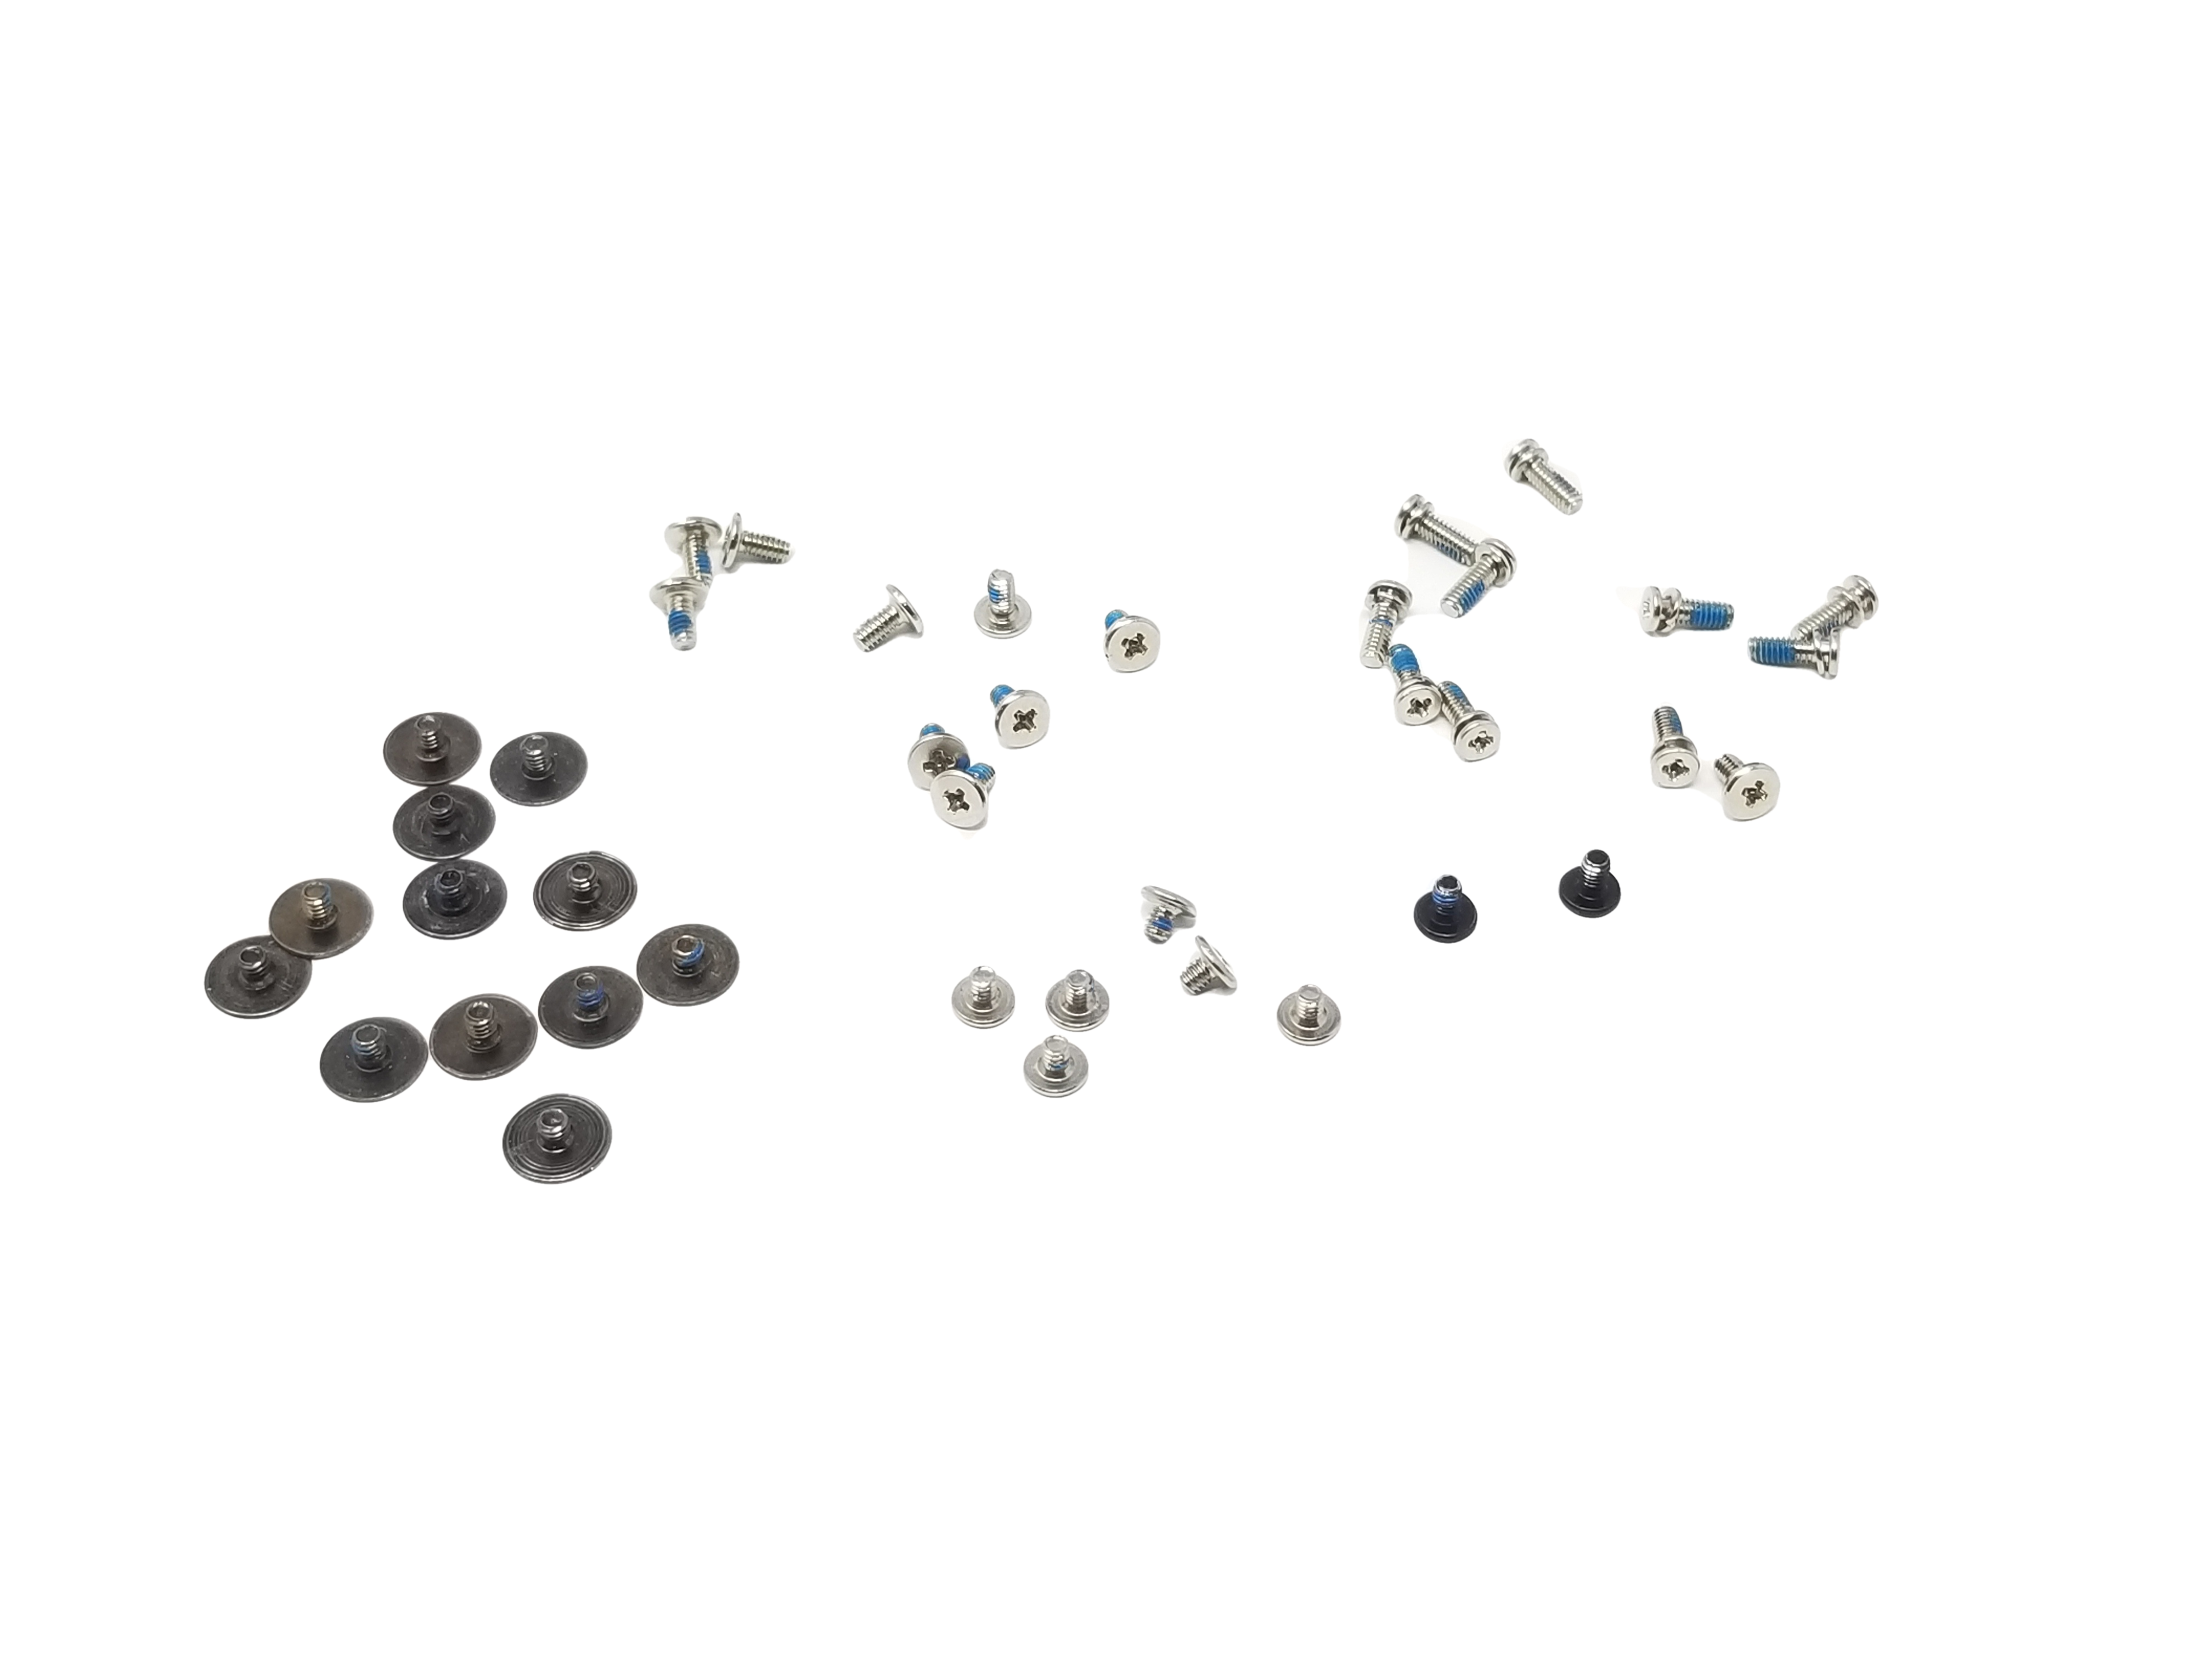 Acer Chromebook 13 CB5-312T Screw kit